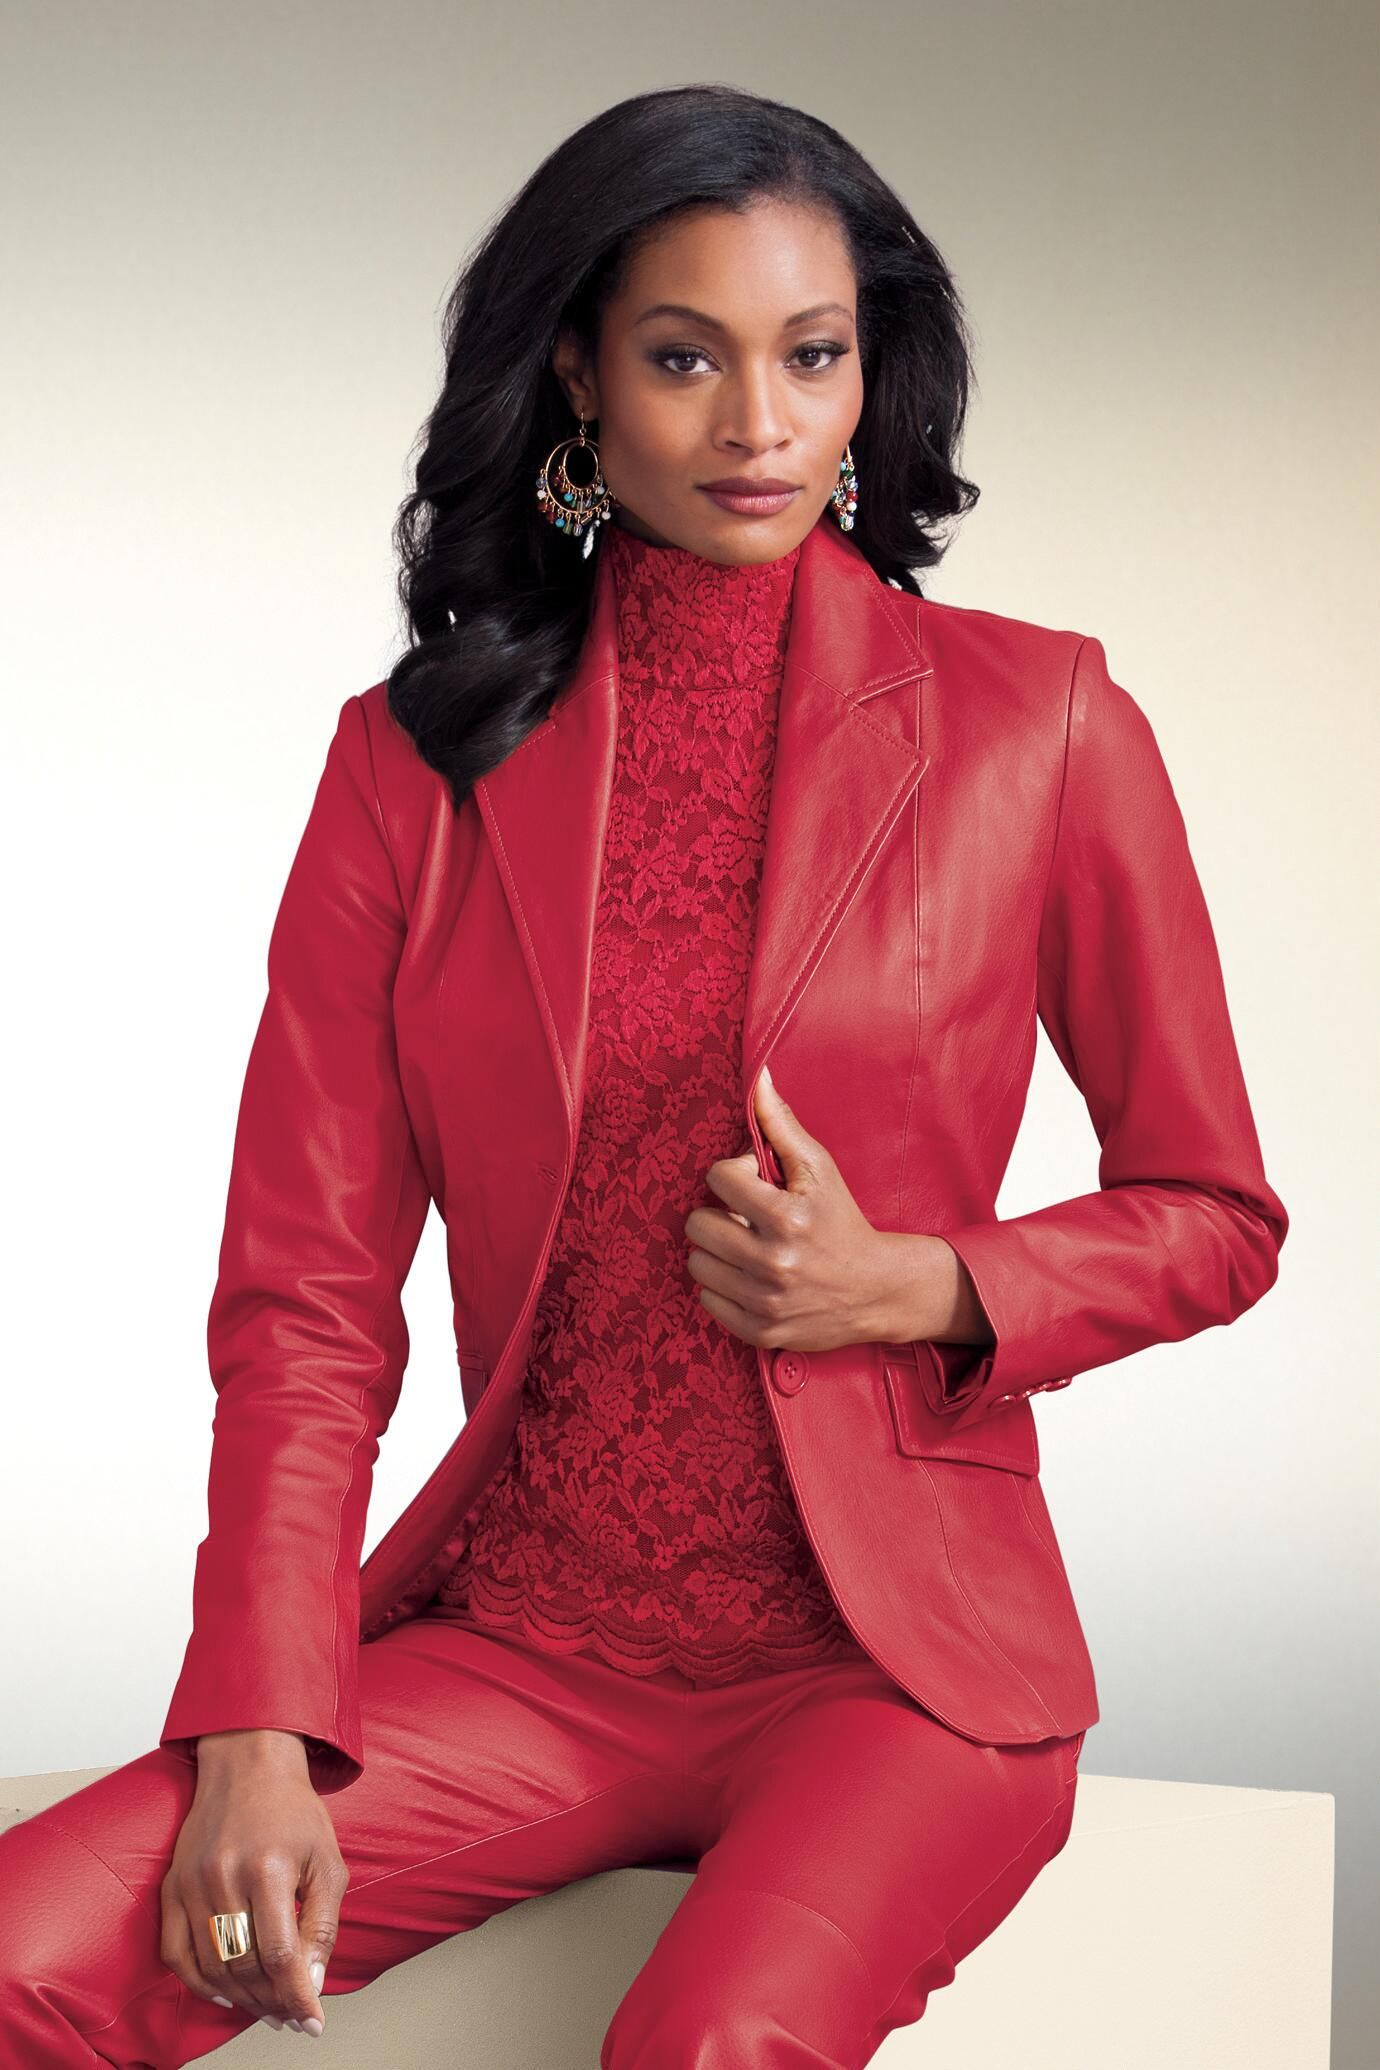 2660ae80fbc2 Genuine Leather Blazer: Unique & Bold Women's Clothing from #metrostyle  $49.99 - $109.99